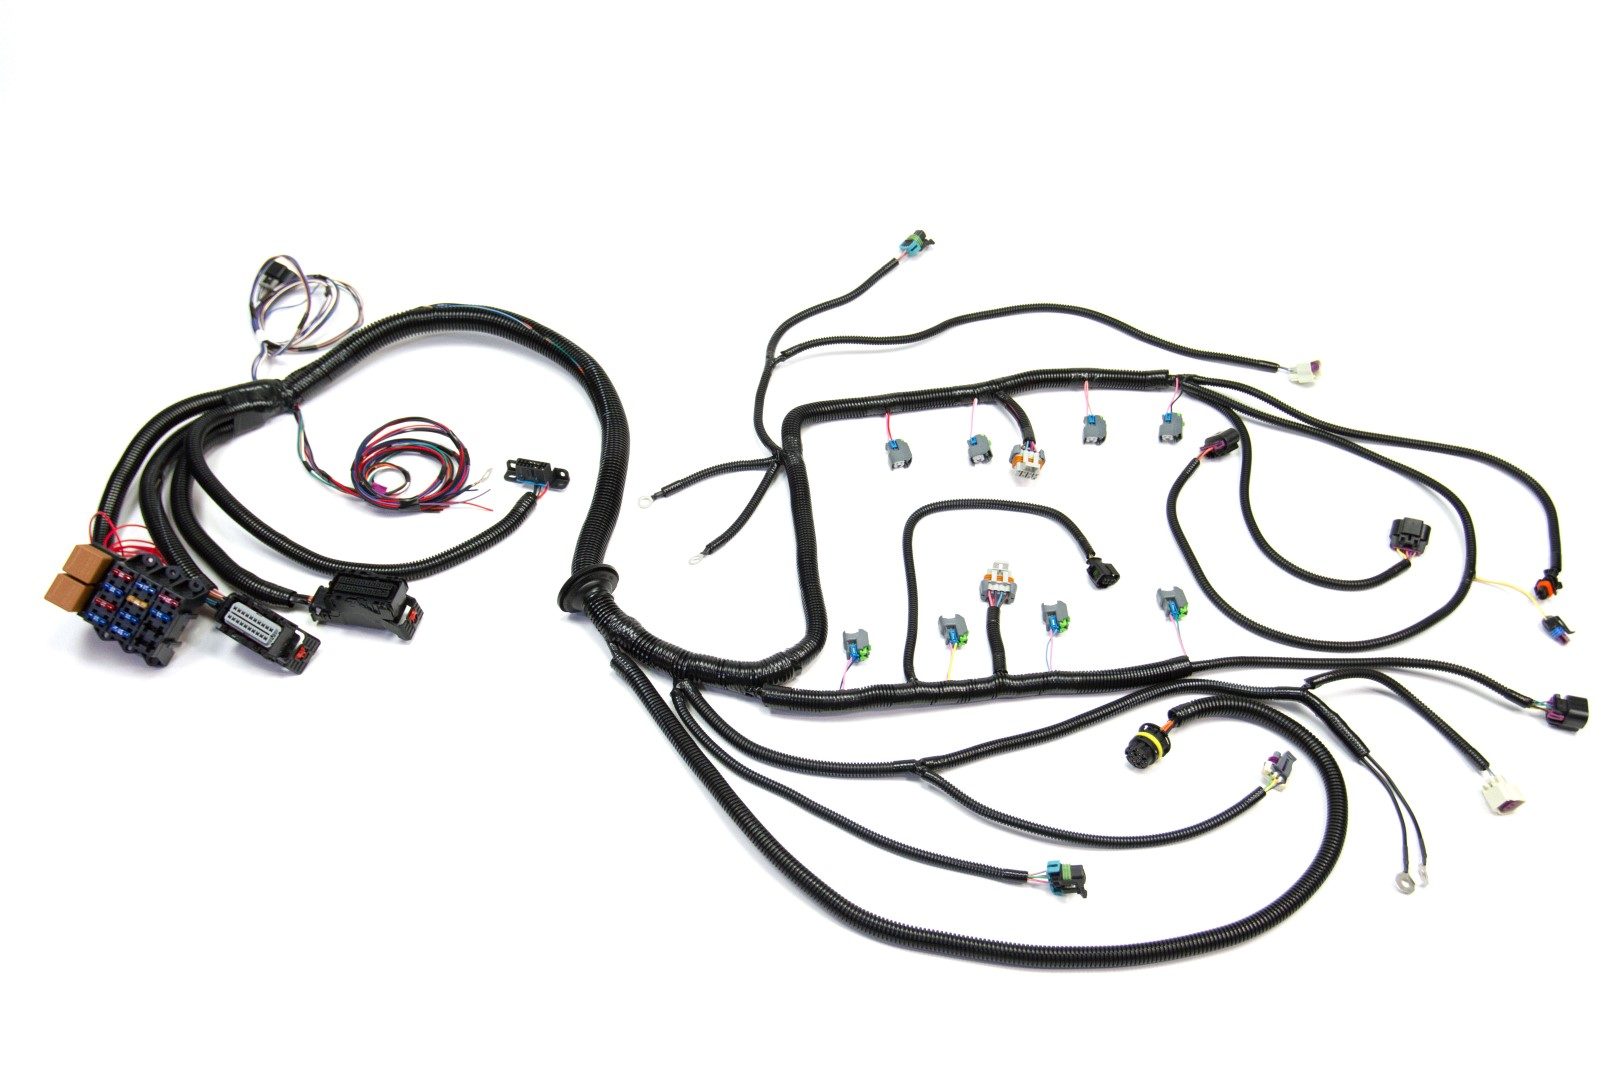 hight resolution of 08 14 ls3 6 2l standalone wiring harness w 6l80e zero gravity 2015 ls3 engine wiring diagram